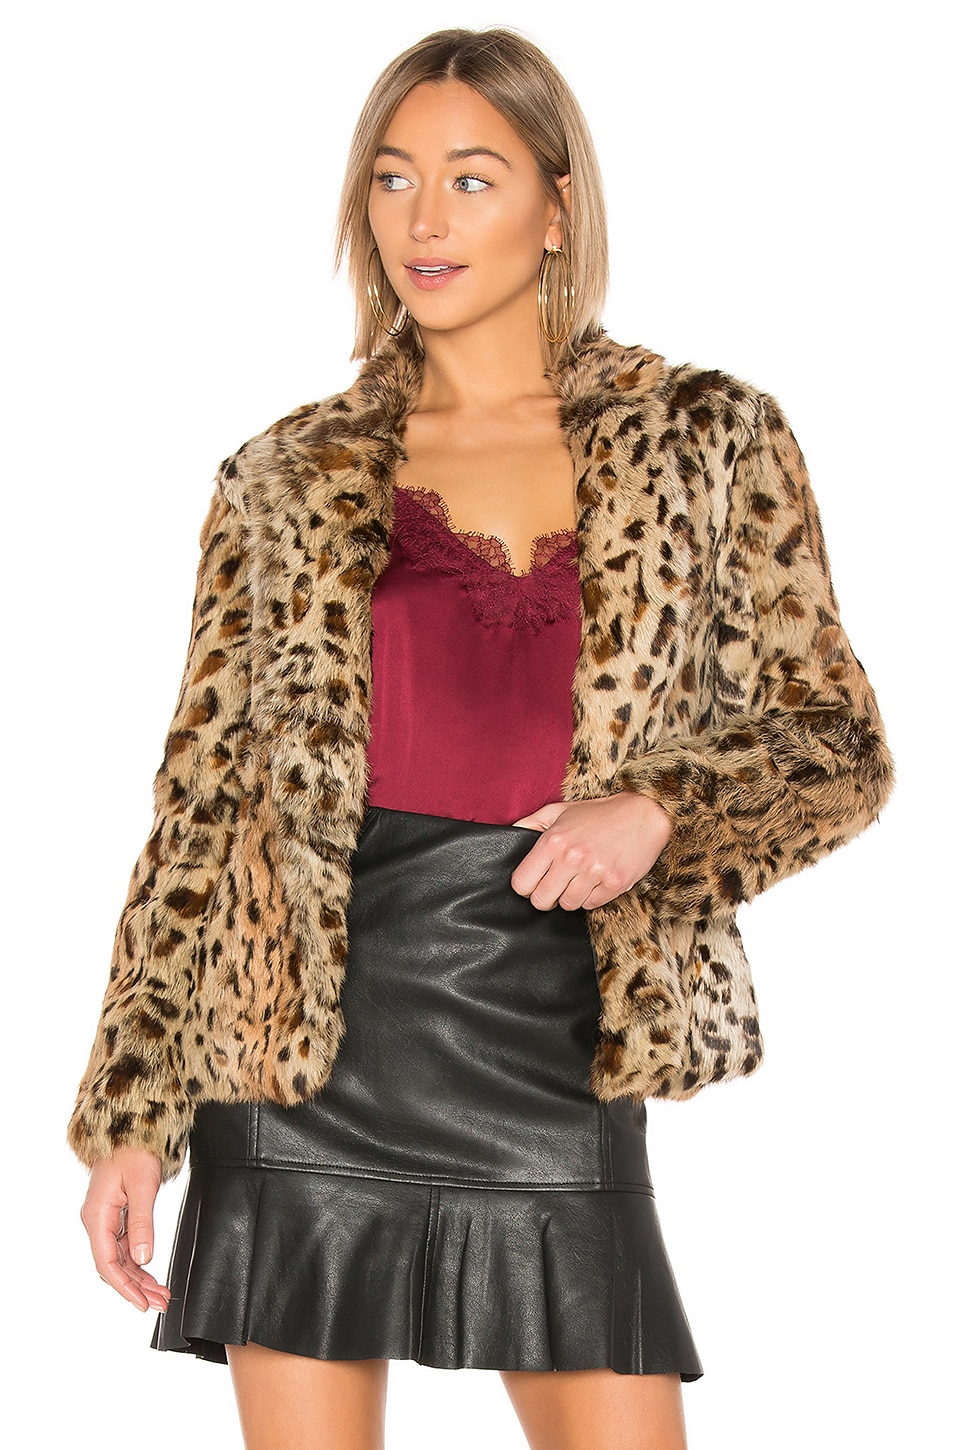 Adrienne Landau Rabbit Jacket in Leopard